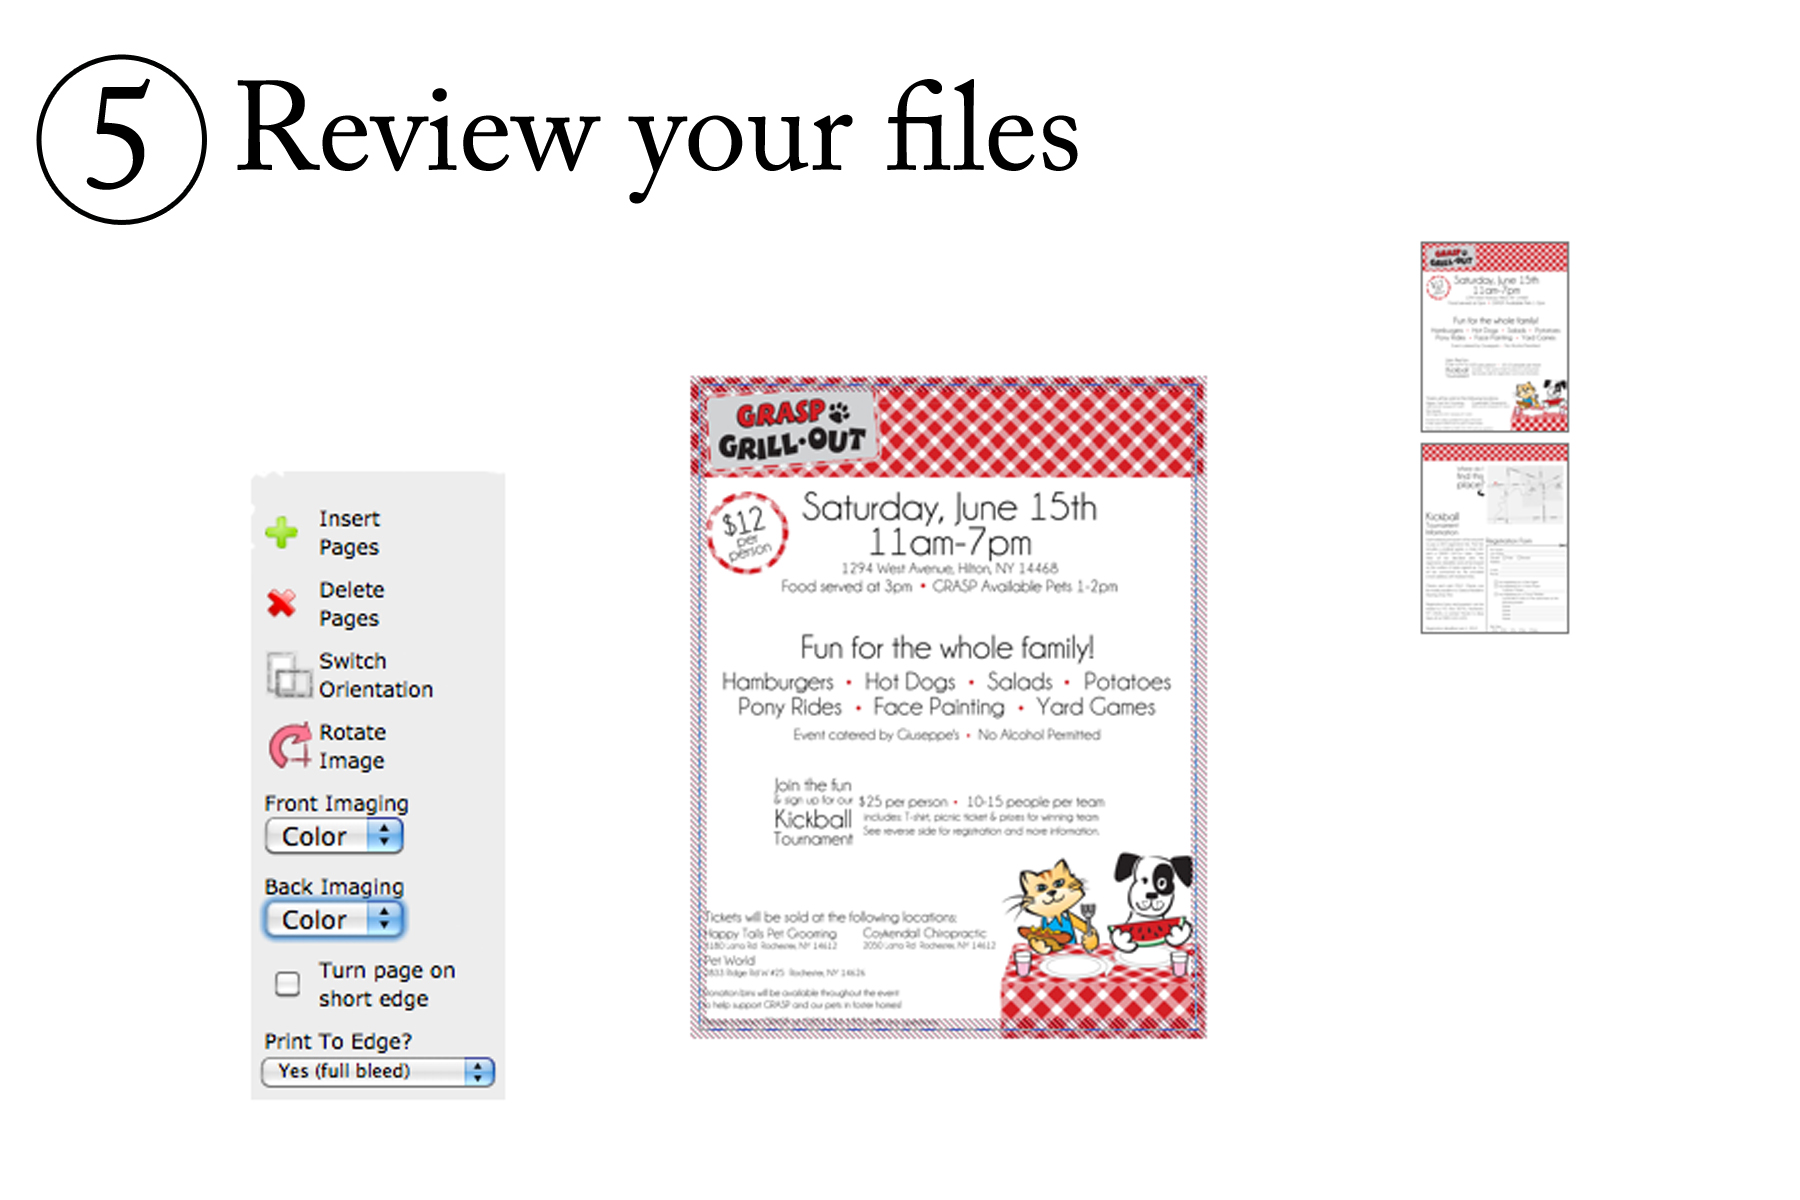 Reviewing Files